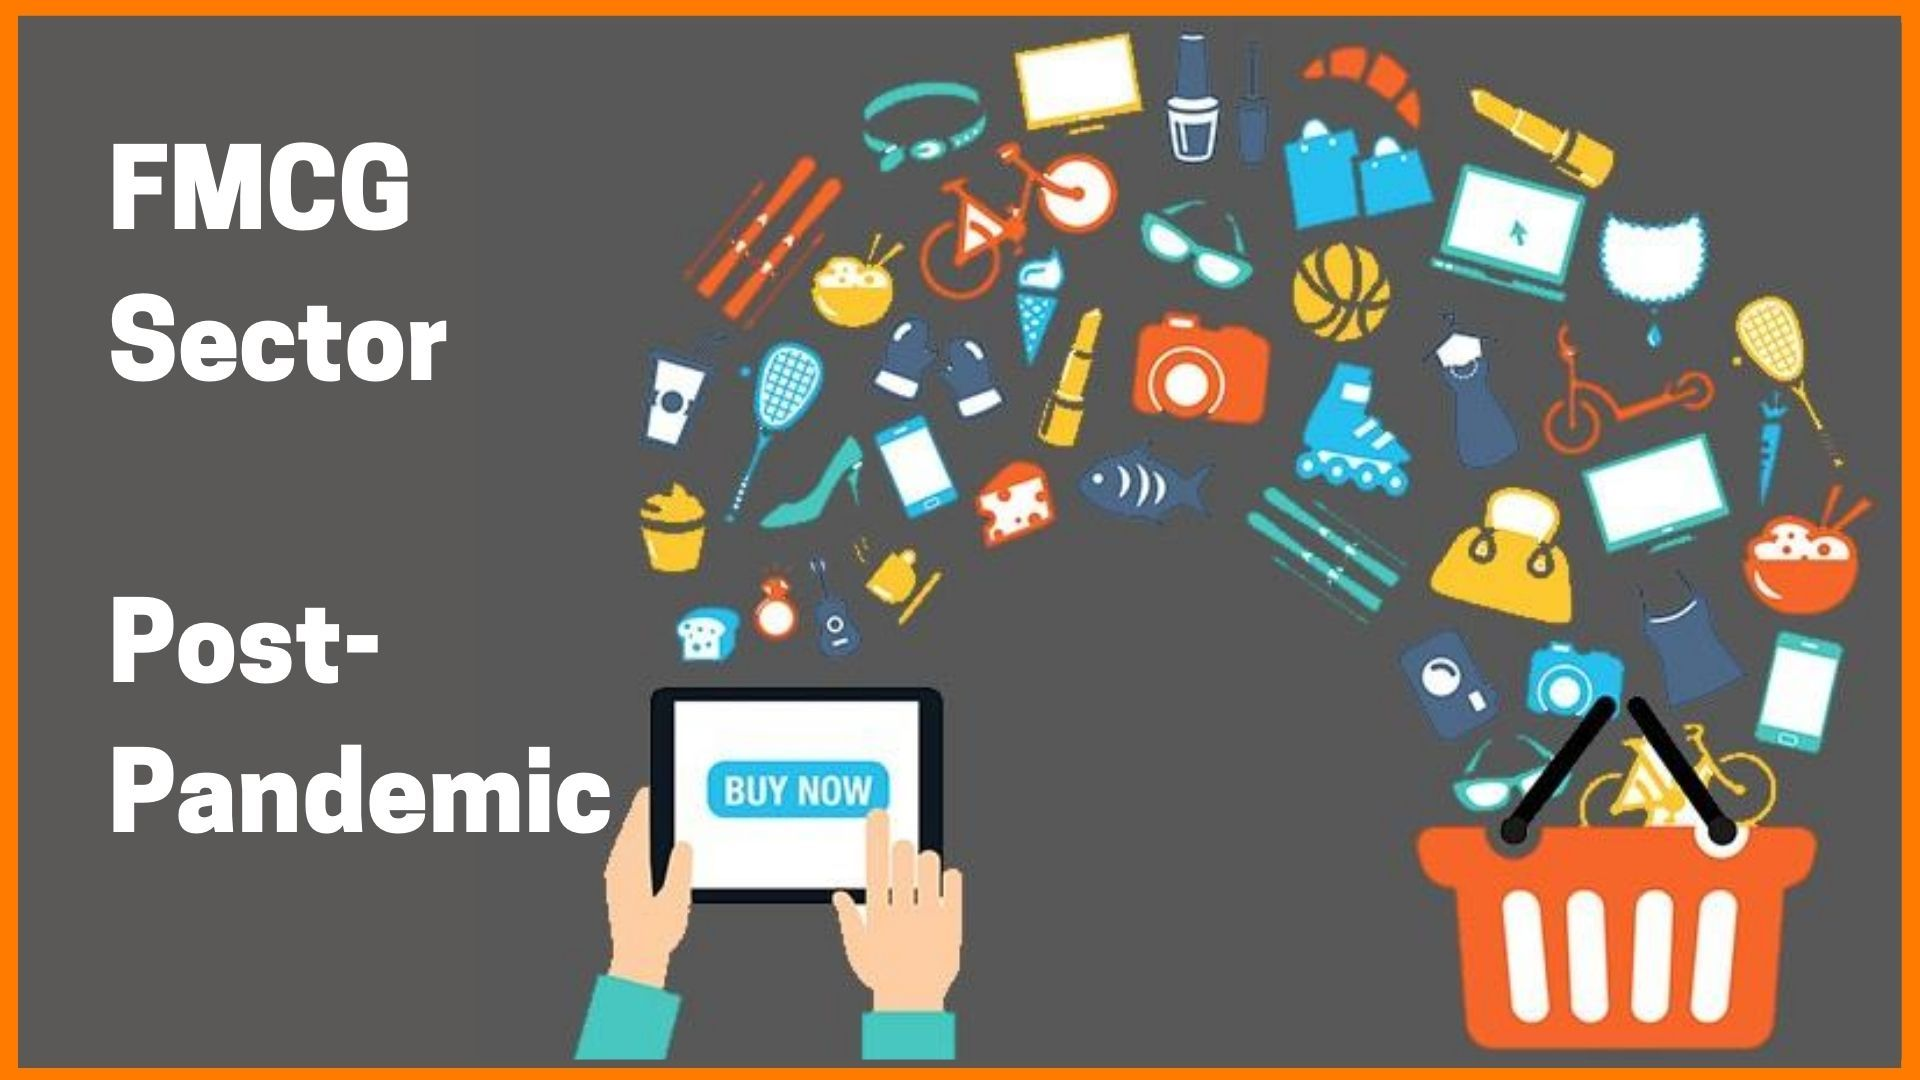 The Future Of FMCG Sector Post Pandemic